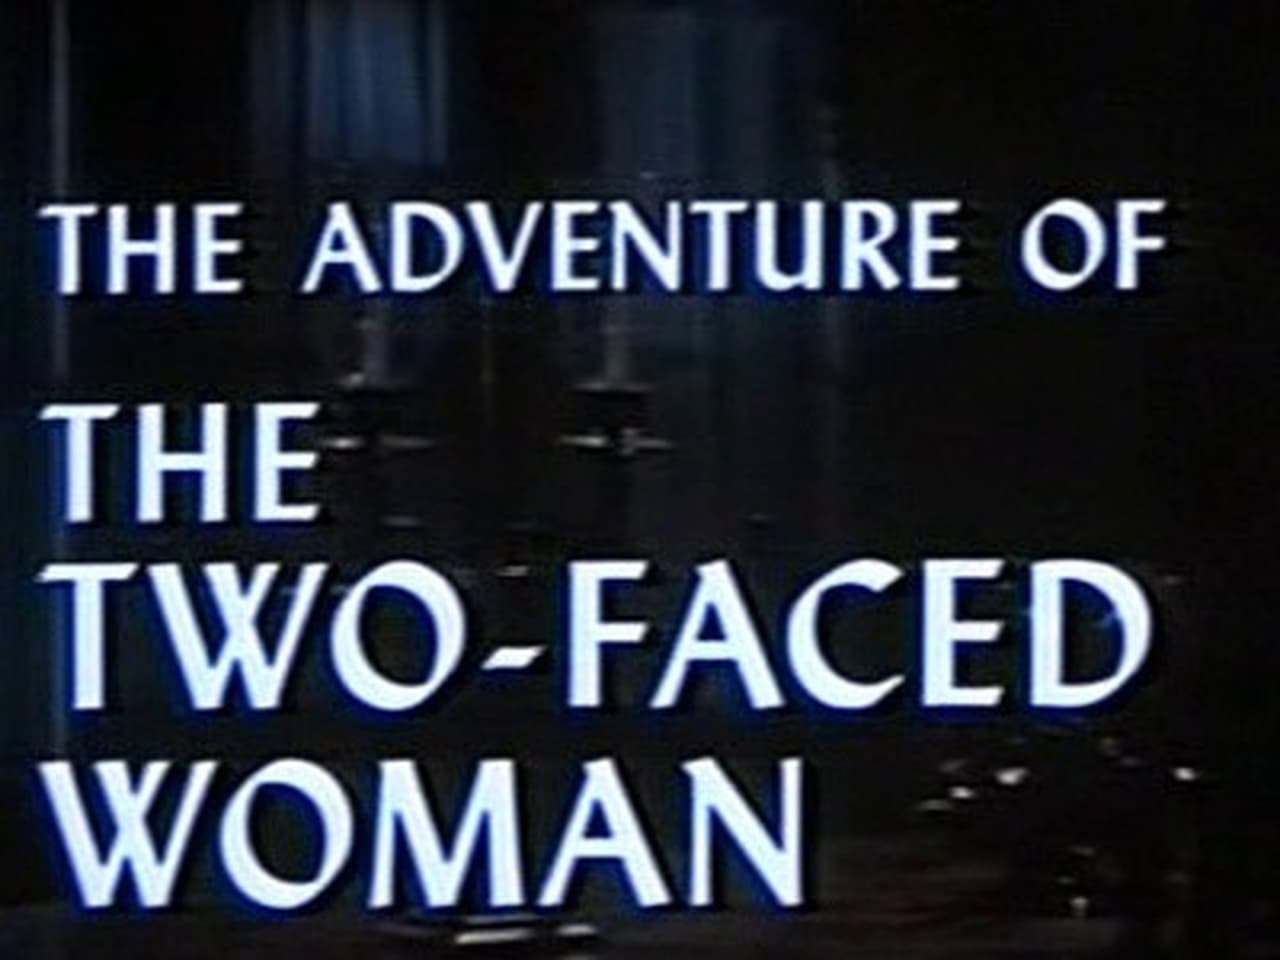 Ellery Queen Episode: The Adventure of the TwoFaced Woman